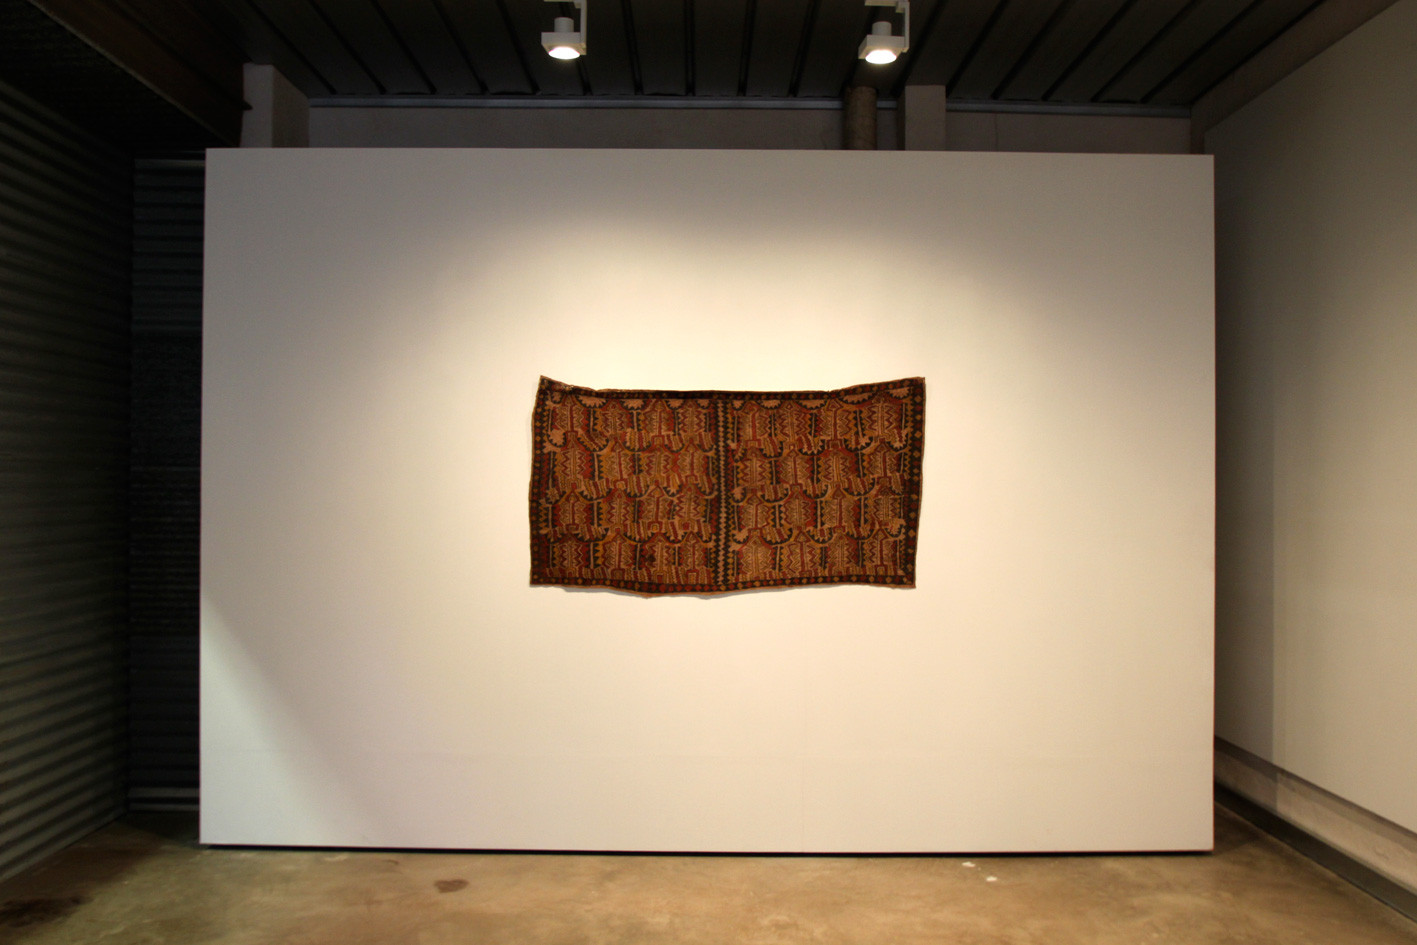 Our barkcloth holds the spirit of our culture